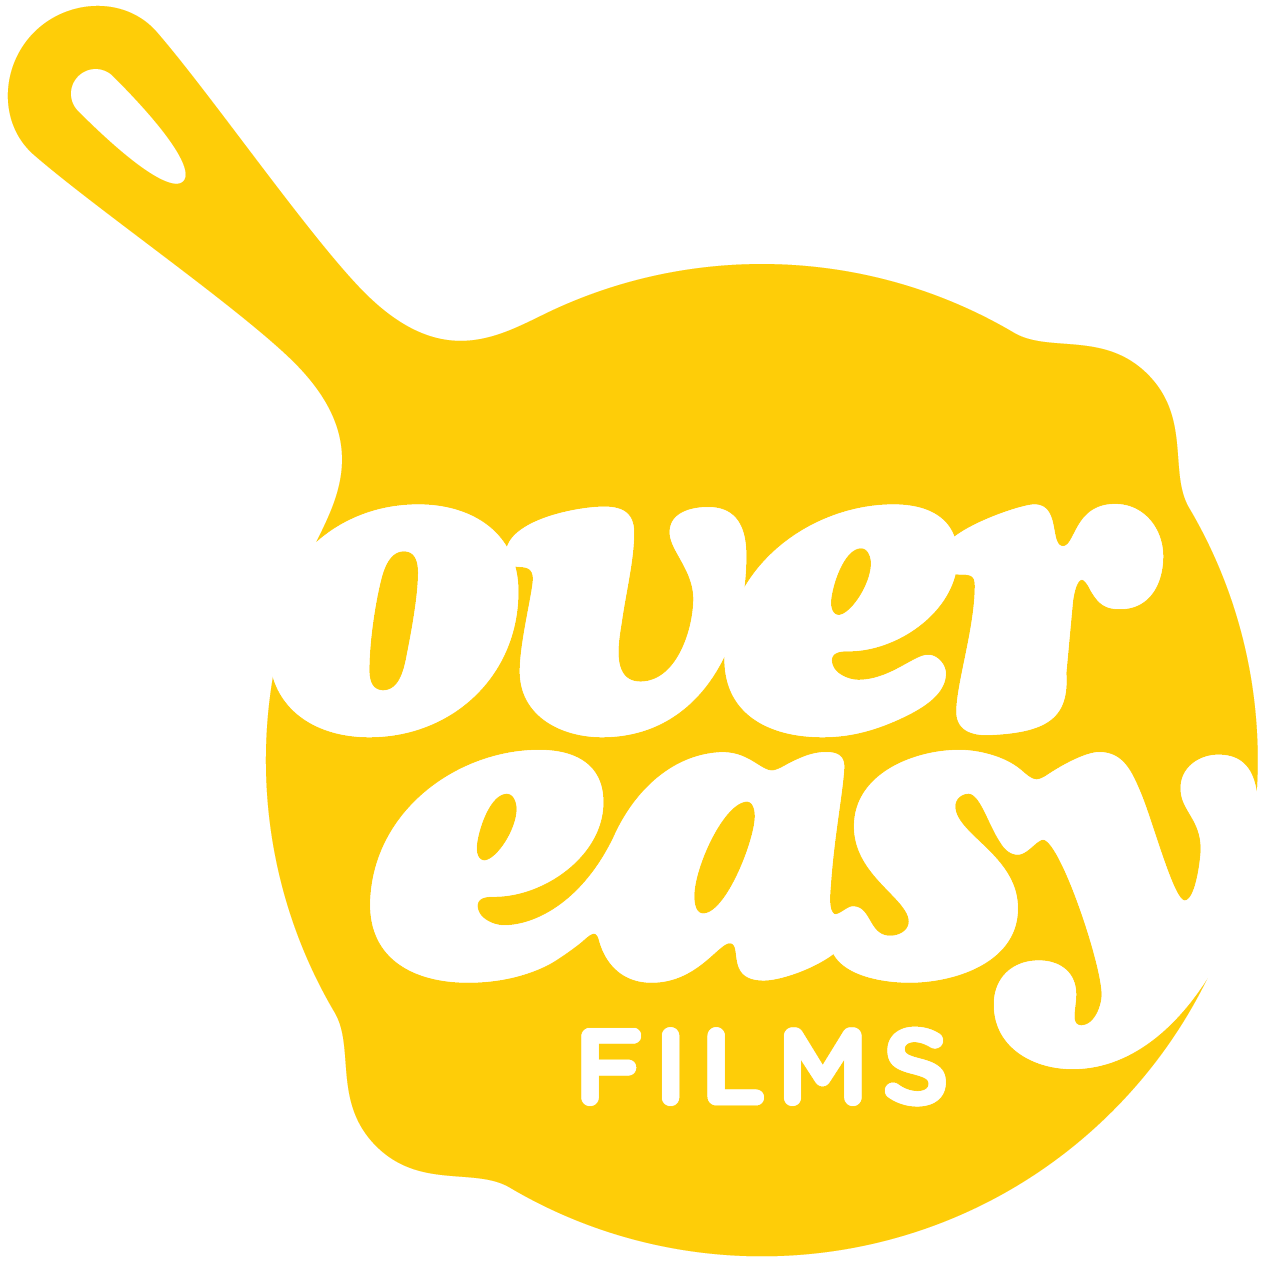 Over Easy Films